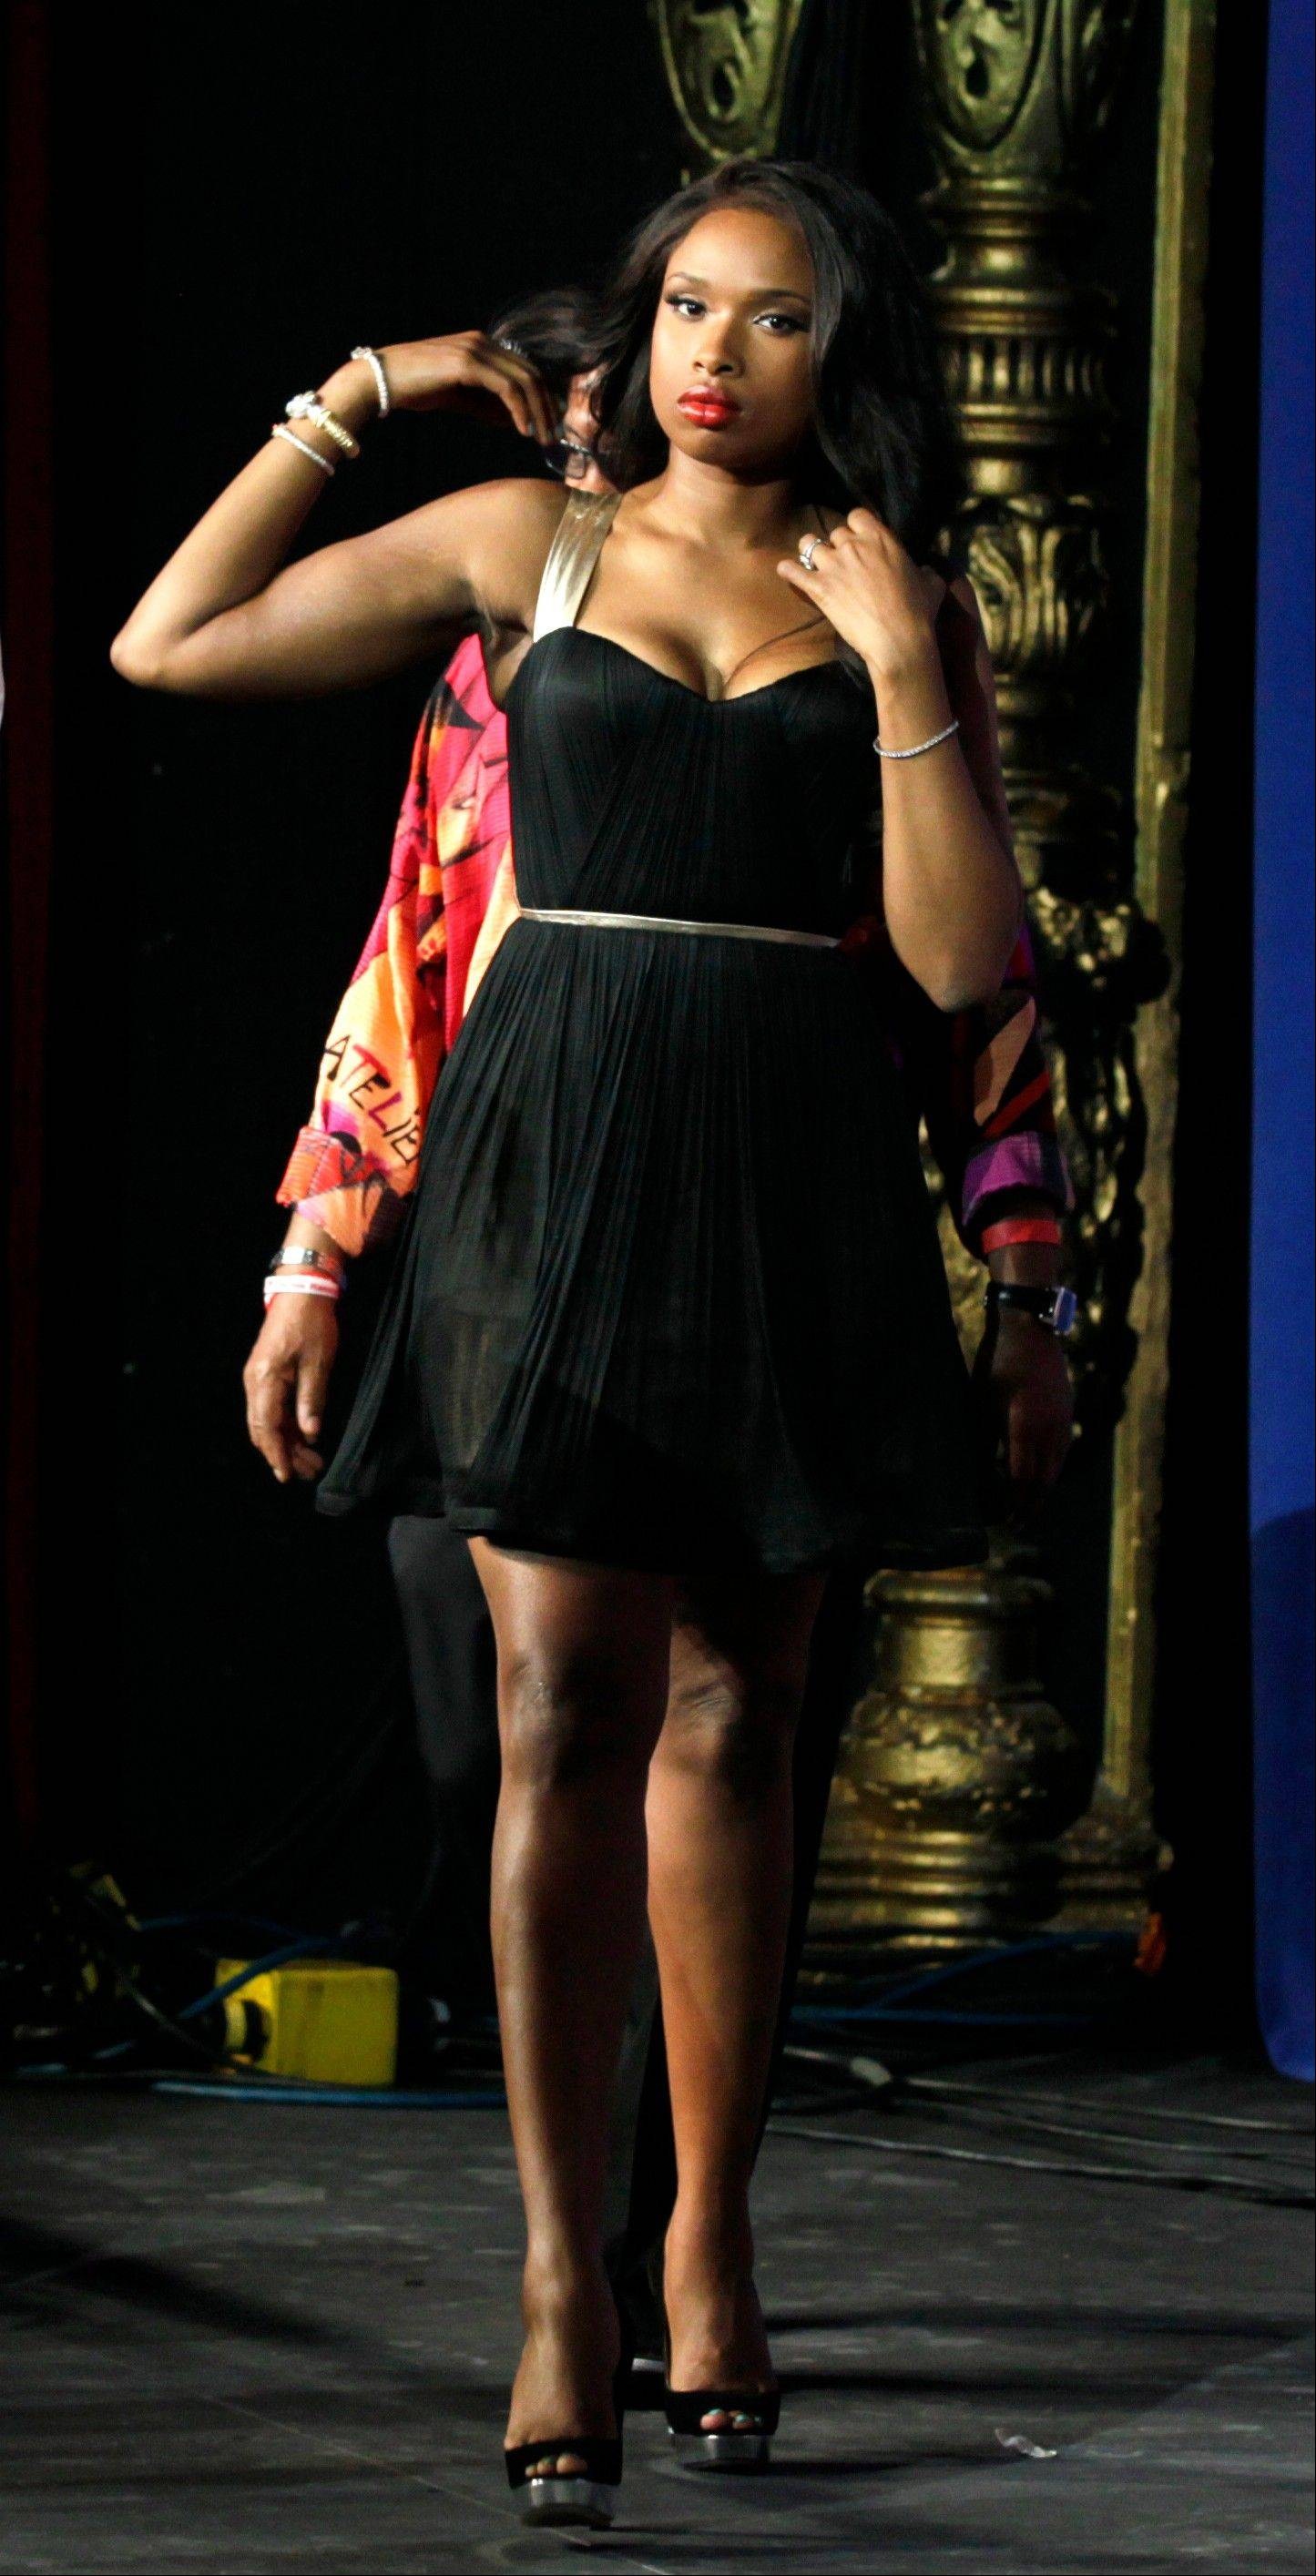 SingerJennifer Hudson was one of the celebs who showed up to stump for President Barack Obama Wednesday at the Arargon Ballroom.